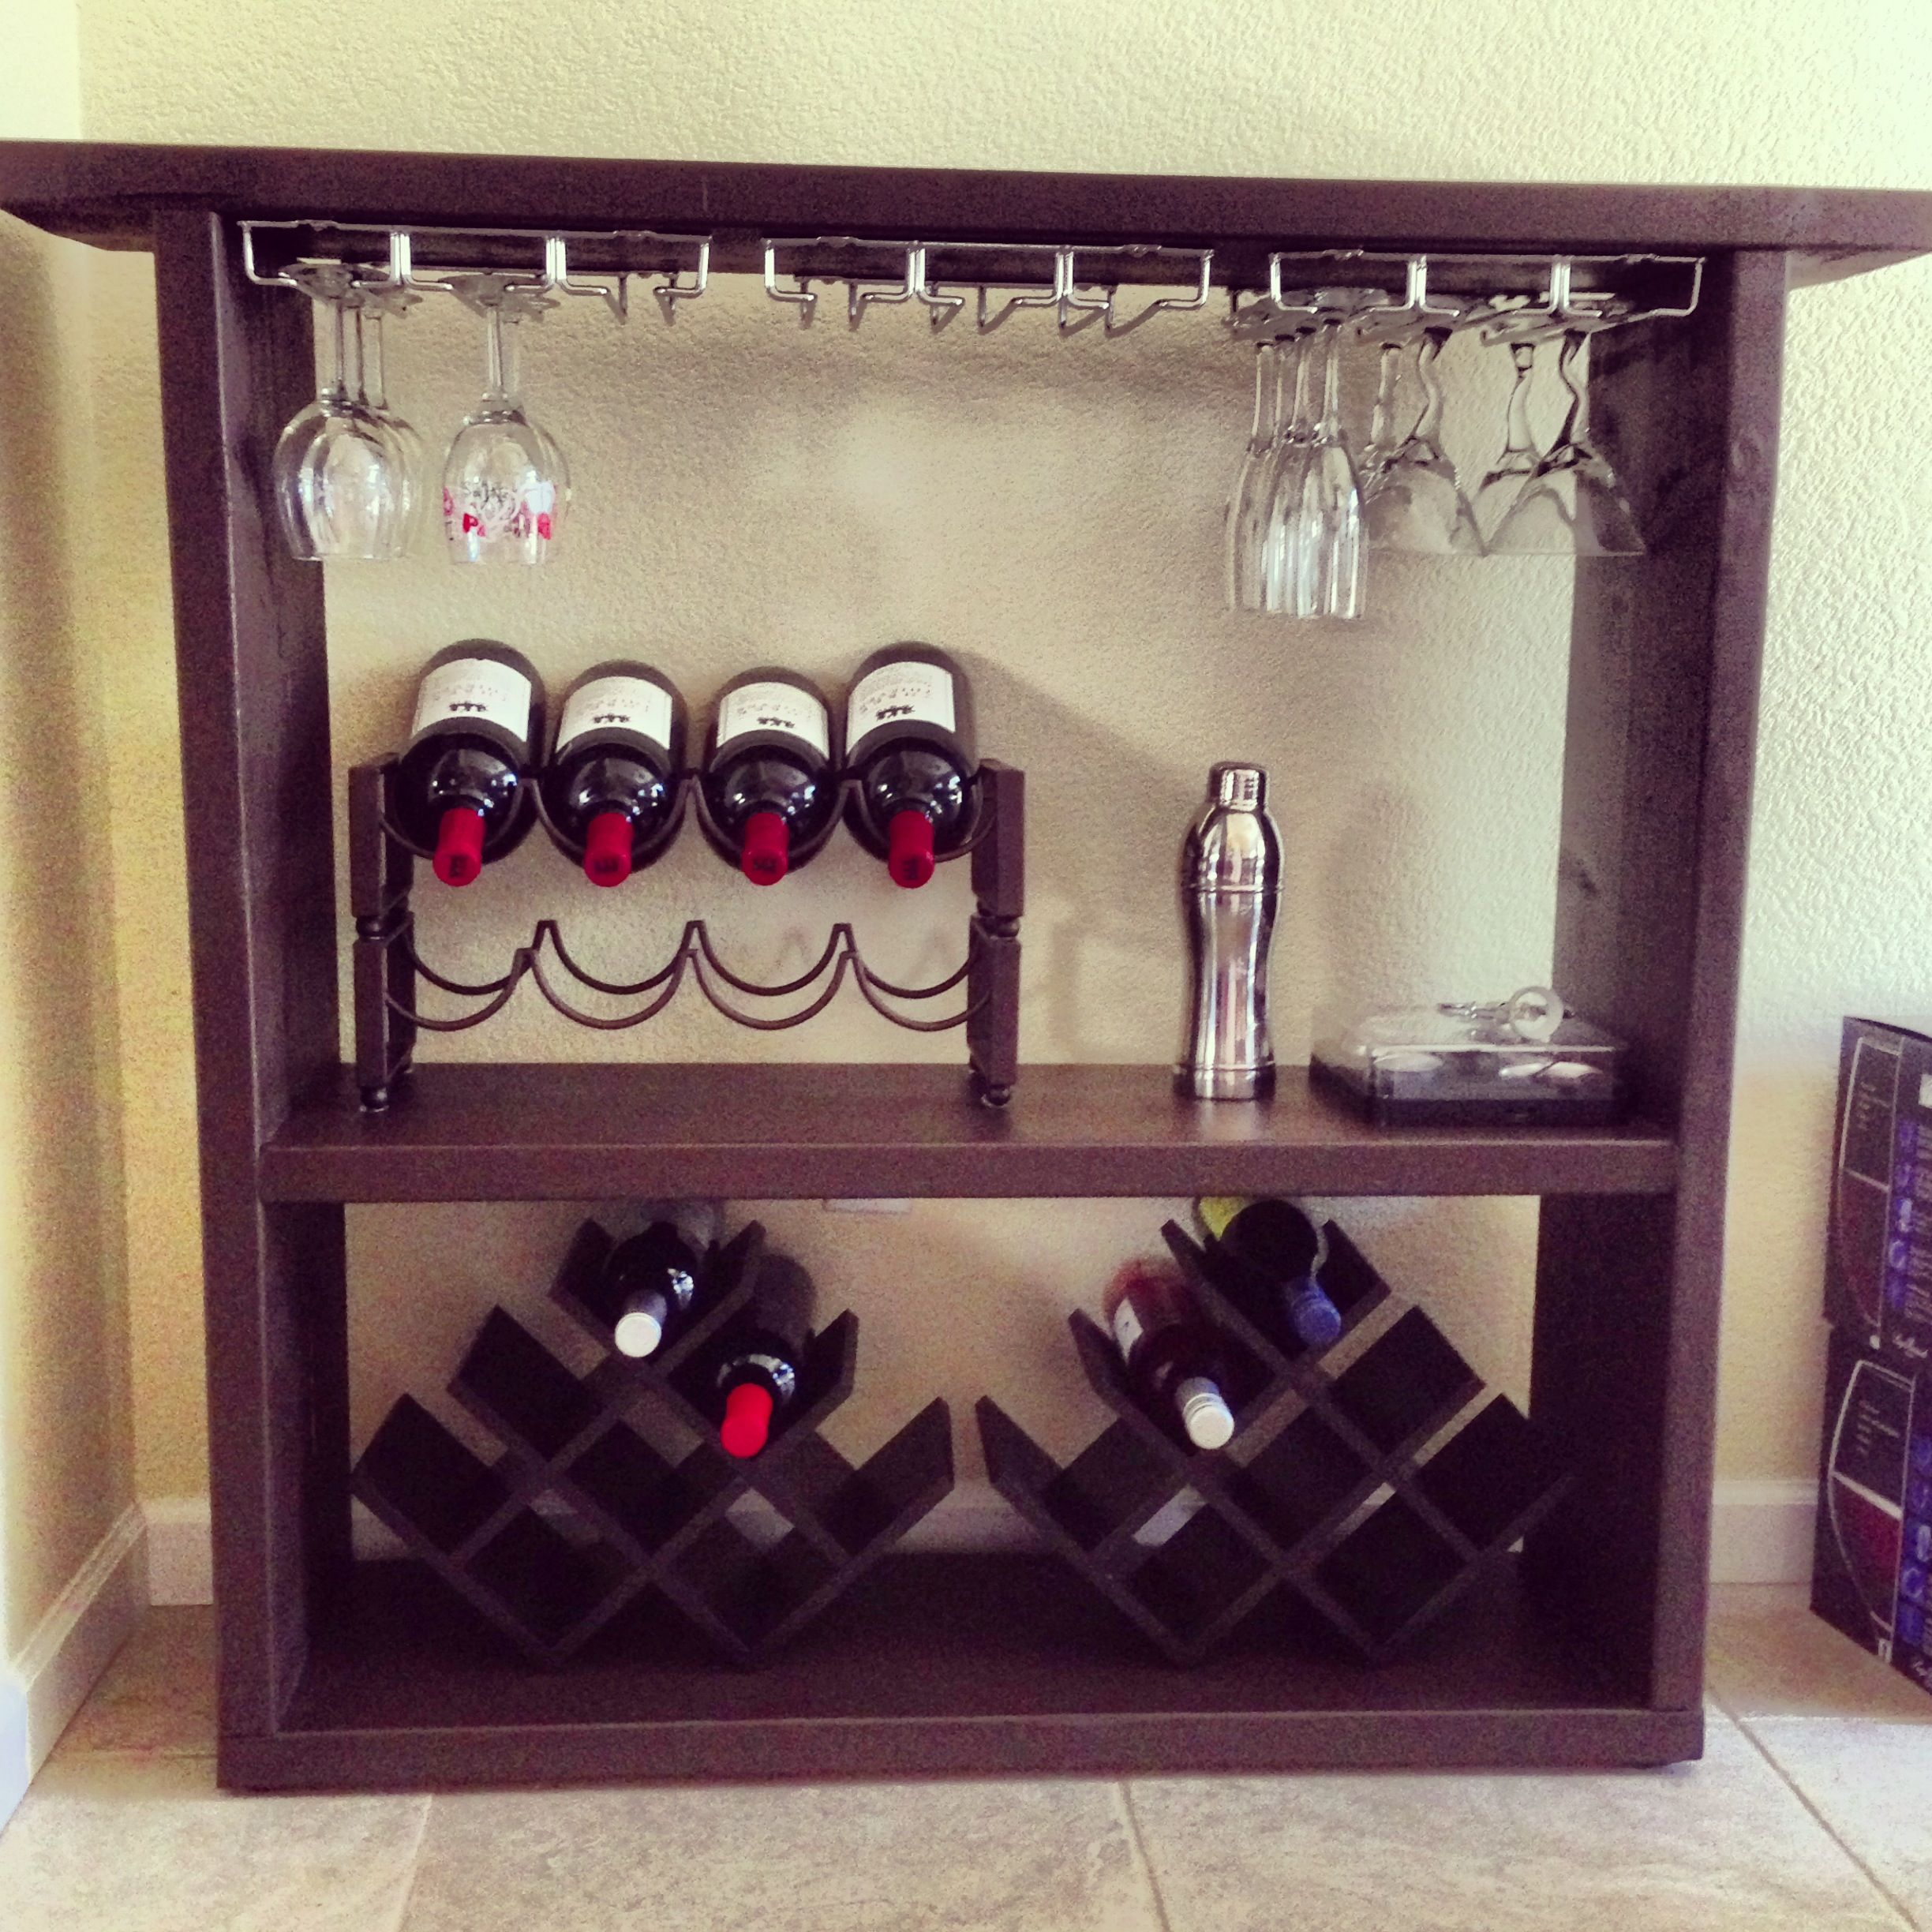 Diy Build A Bar Cabinet: DIY Wine Bar 2x12 Lumber Cut To Size & Painted Attached